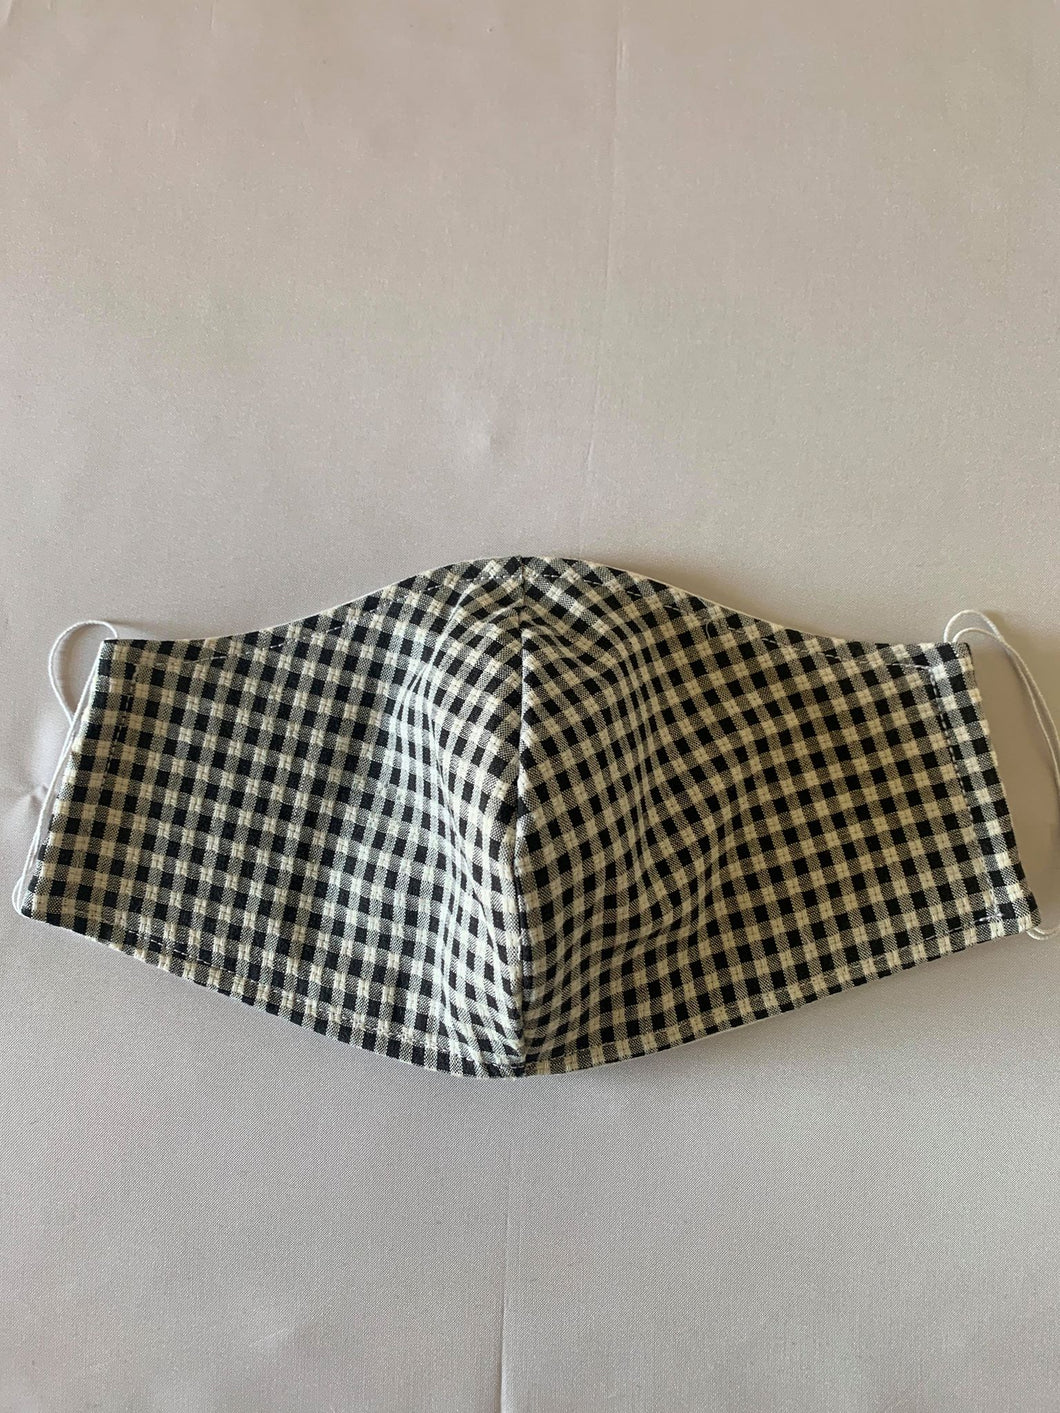 Gingham B&W - FACE MASK